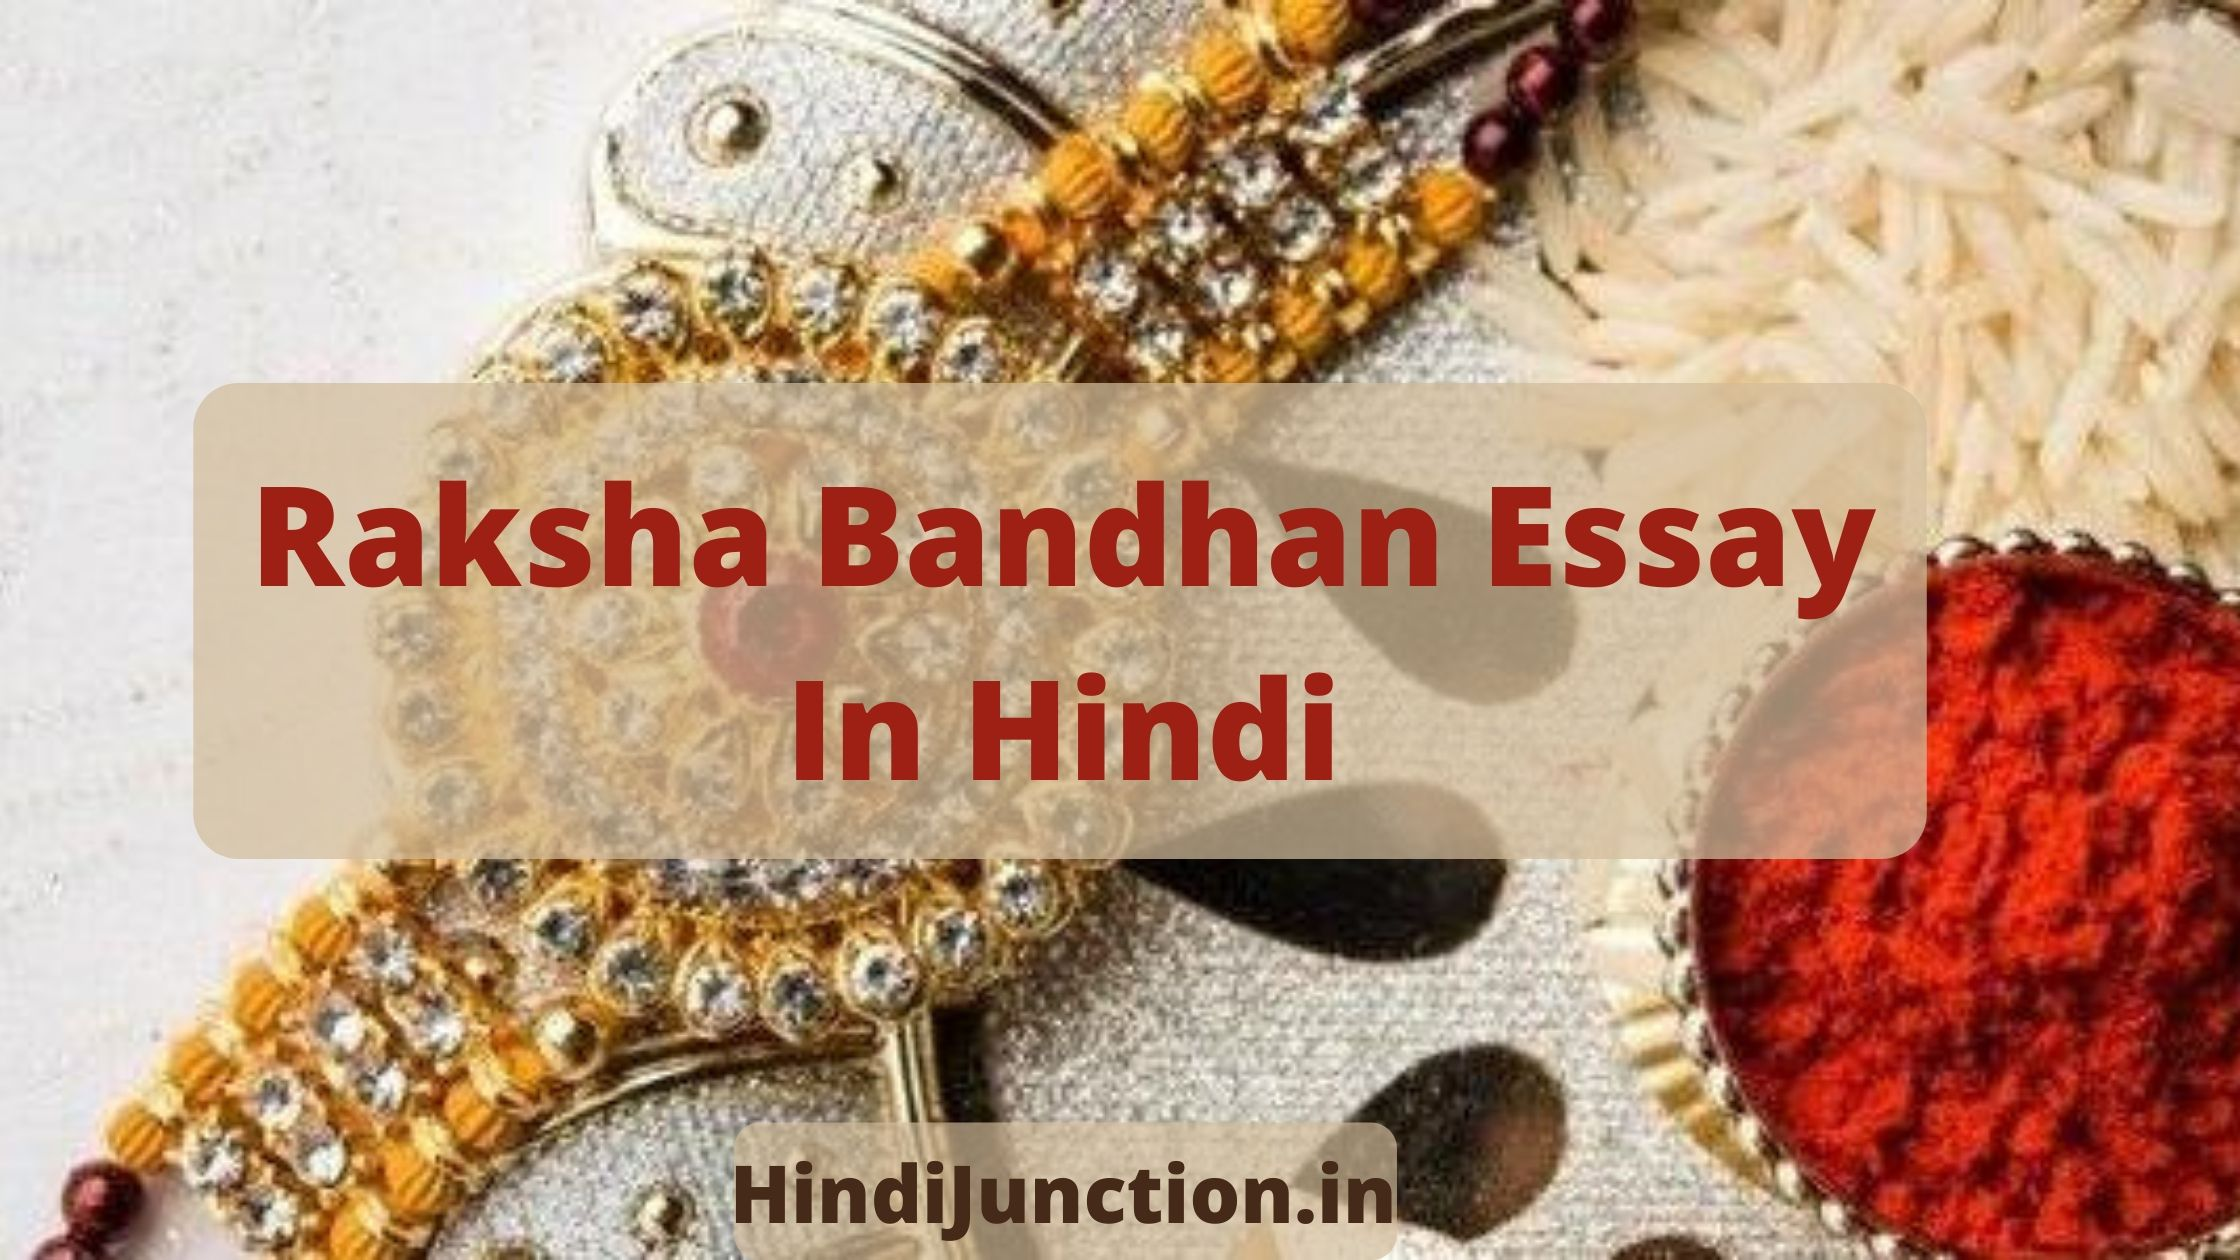 raksha bandhan essay in hindi, raksha bandhan in hindi, 20 lines on raksha bandhan in hindi, about raksha bandhan in hindi, raksha bandhan essay 10 lines essay on raksha bandhan in hindi in 250 words, importance of raksha bandhan in hindi, short essay on raksha bandhan in hindi, history of raksha bandhan in hindi, raksha bandhan meaning in hindi,